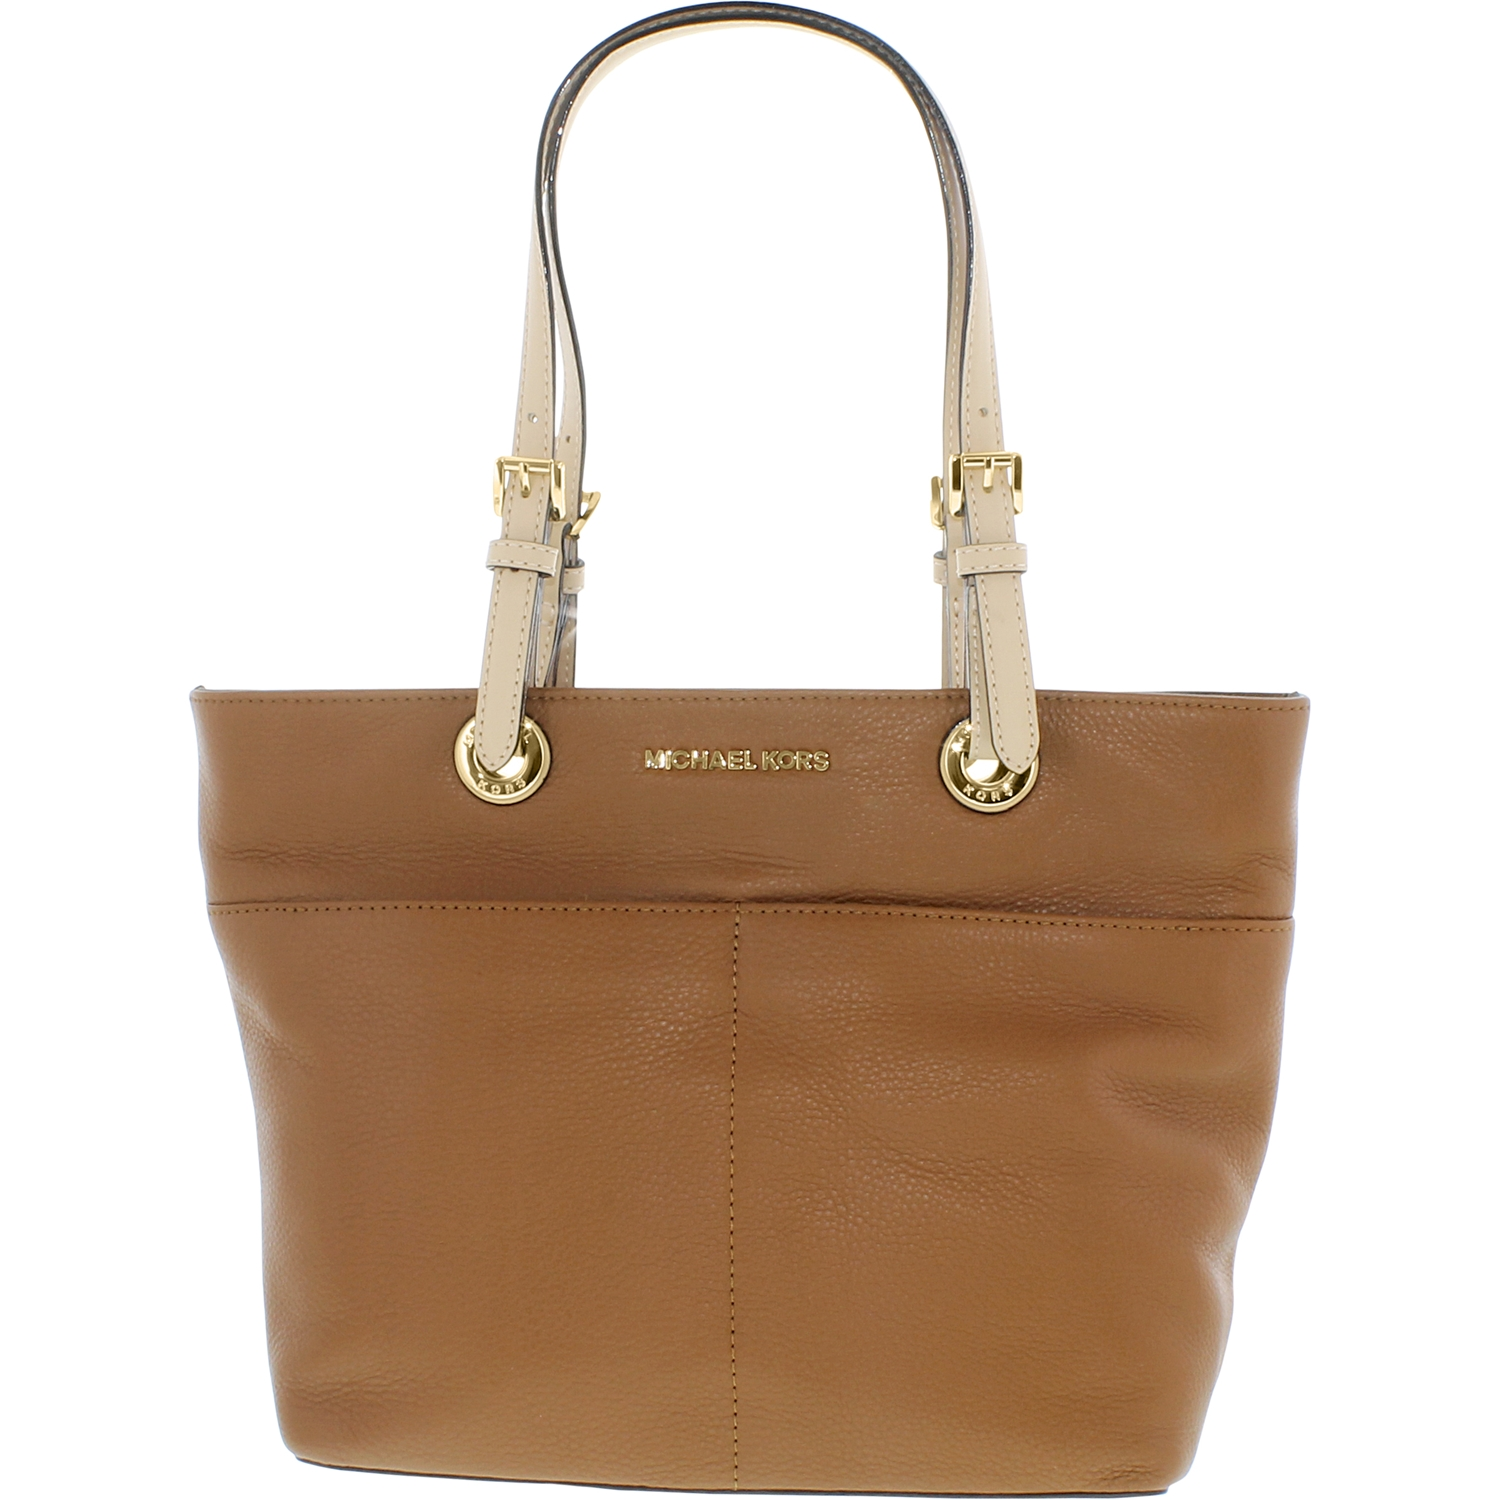 4f37e7e20143 Michael Kors - Michael Kors Women s Large Elana East West Leather  Top-Handle Bag Tote - Brown - Walmart.com